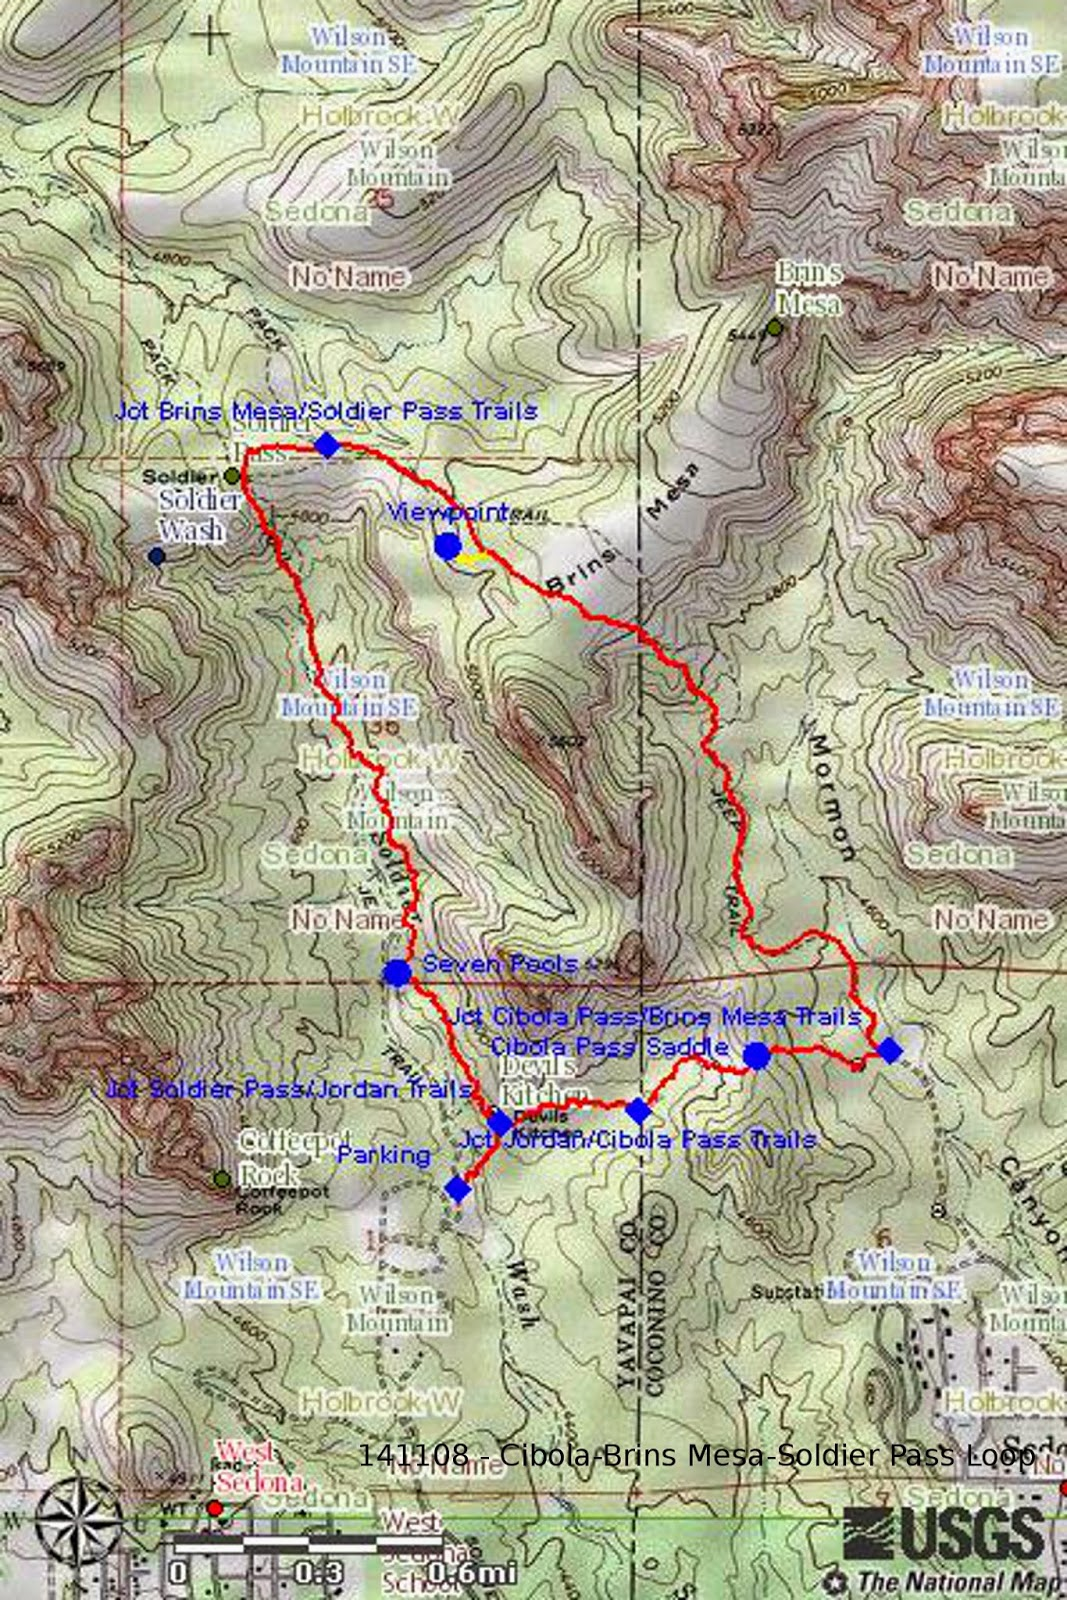 our gps track is shown in red on the included map next page the short yellow track on the map shows the way to the viewpoint overlooking soldier wash